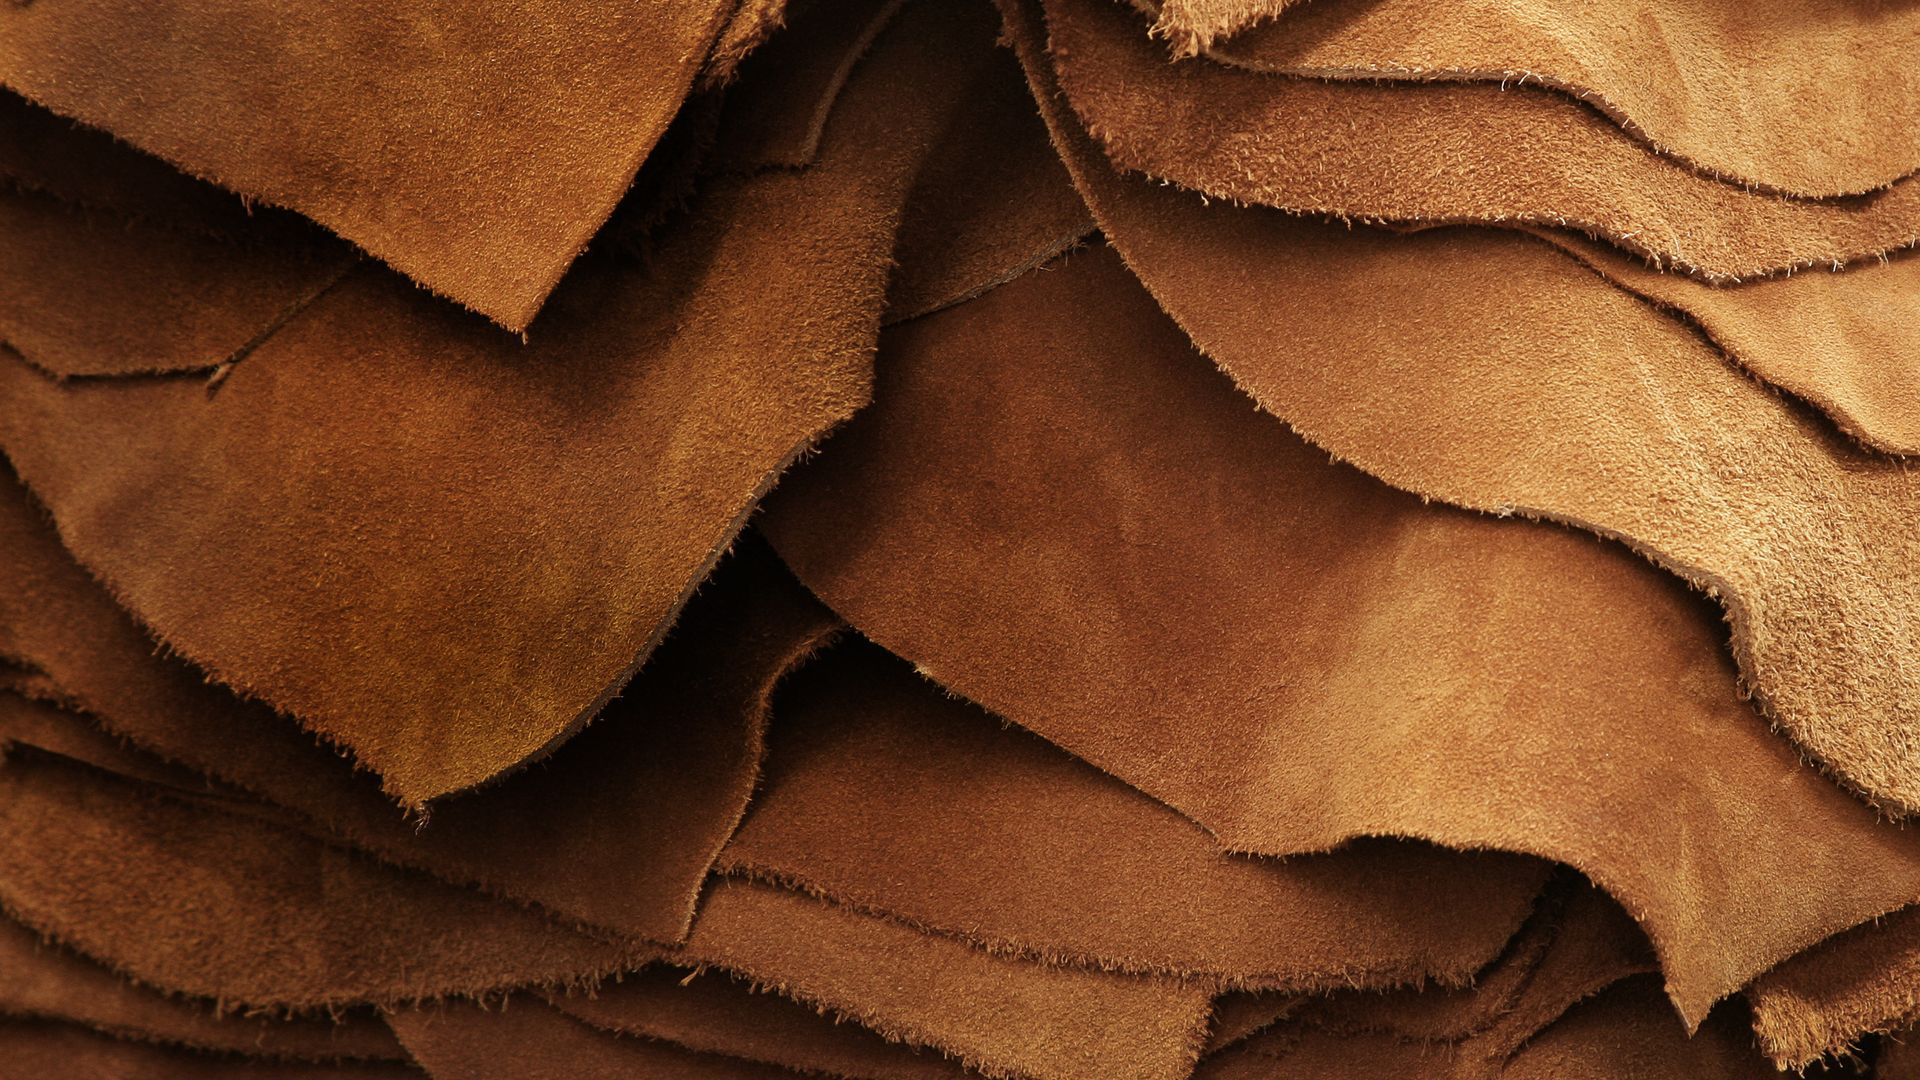 Authentic Leathers - Feel the new authentic shapes for your home